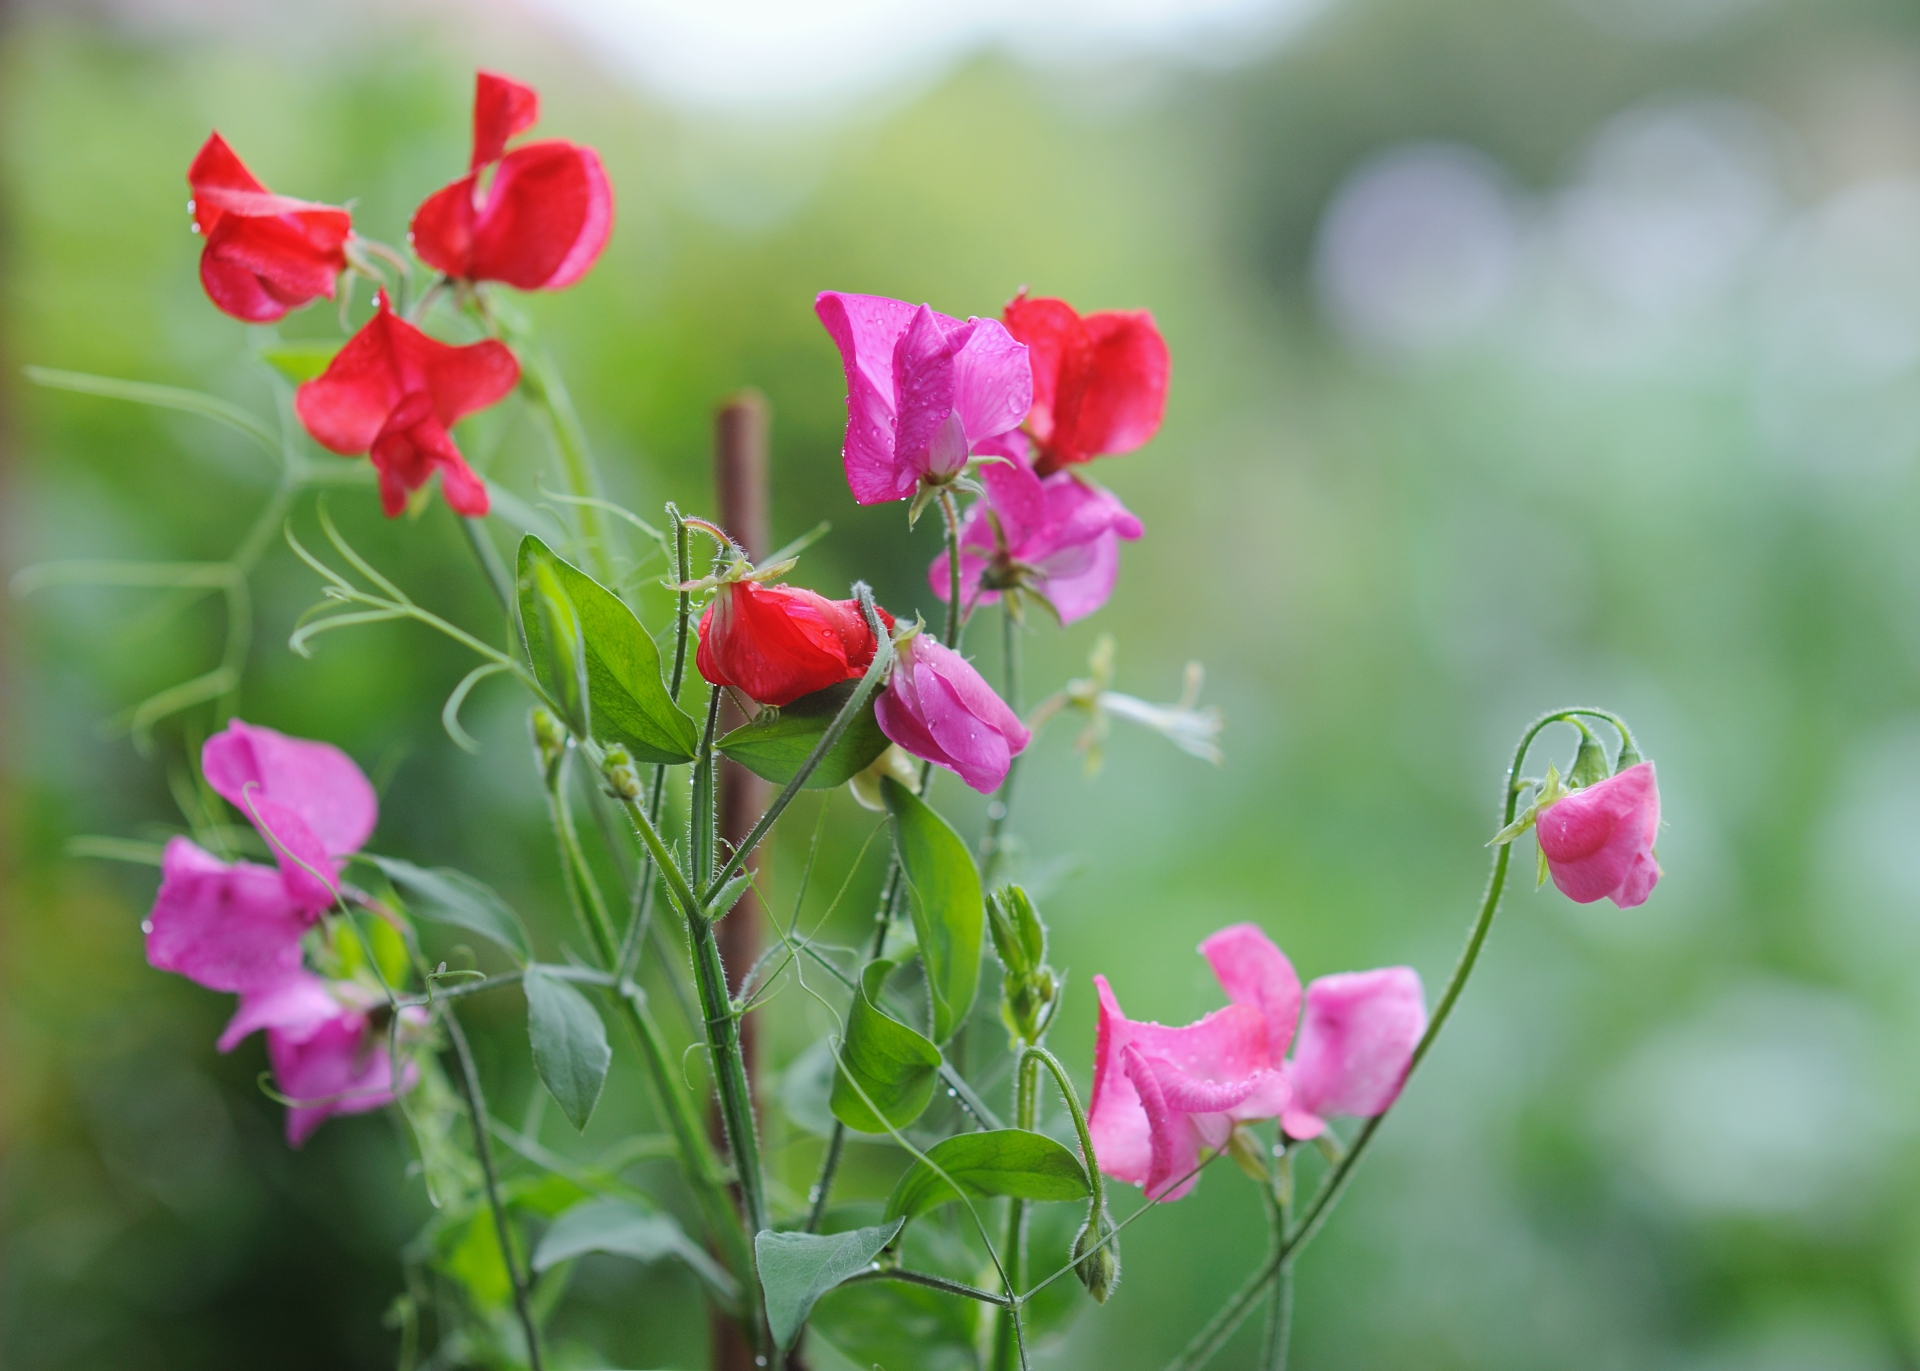 Sweet peas how to plant grow and care for sweet pea flowers the sweet peas how to plant grow and care for sweet pea flowers the old farmers almanac mightylinksfo